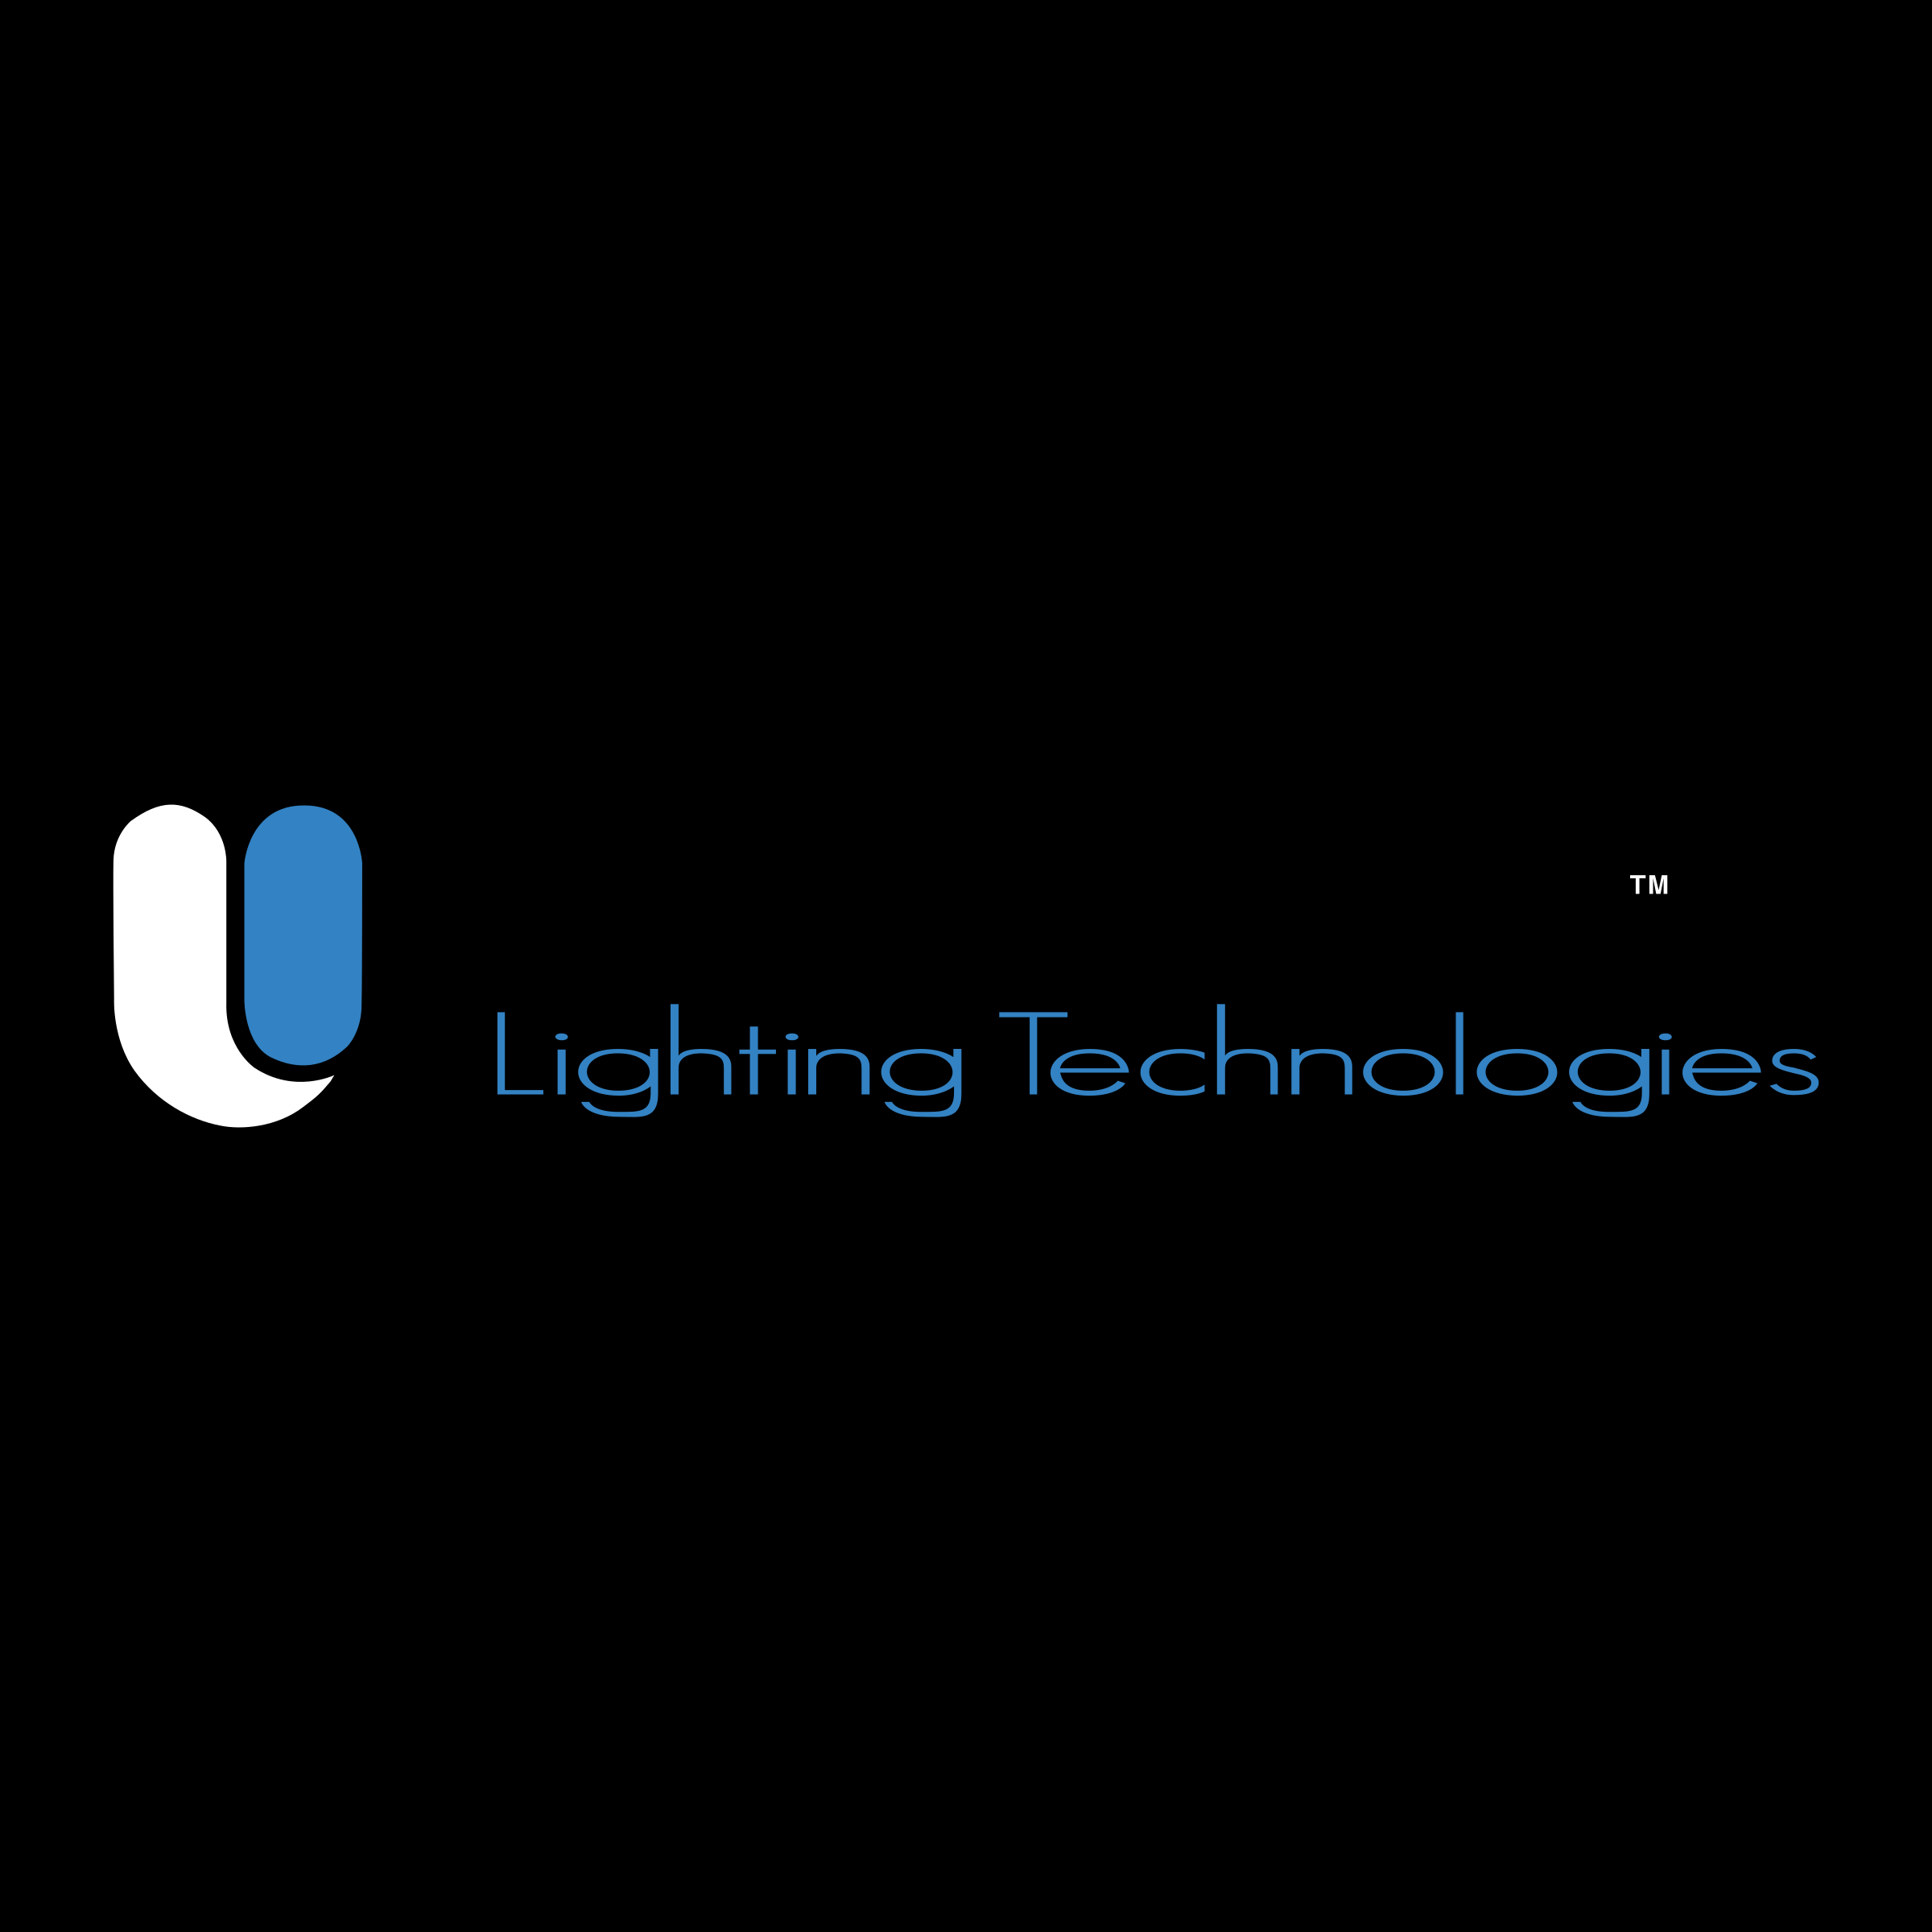 Perfect Universal Lighting Technologies Logo PNG Transparent